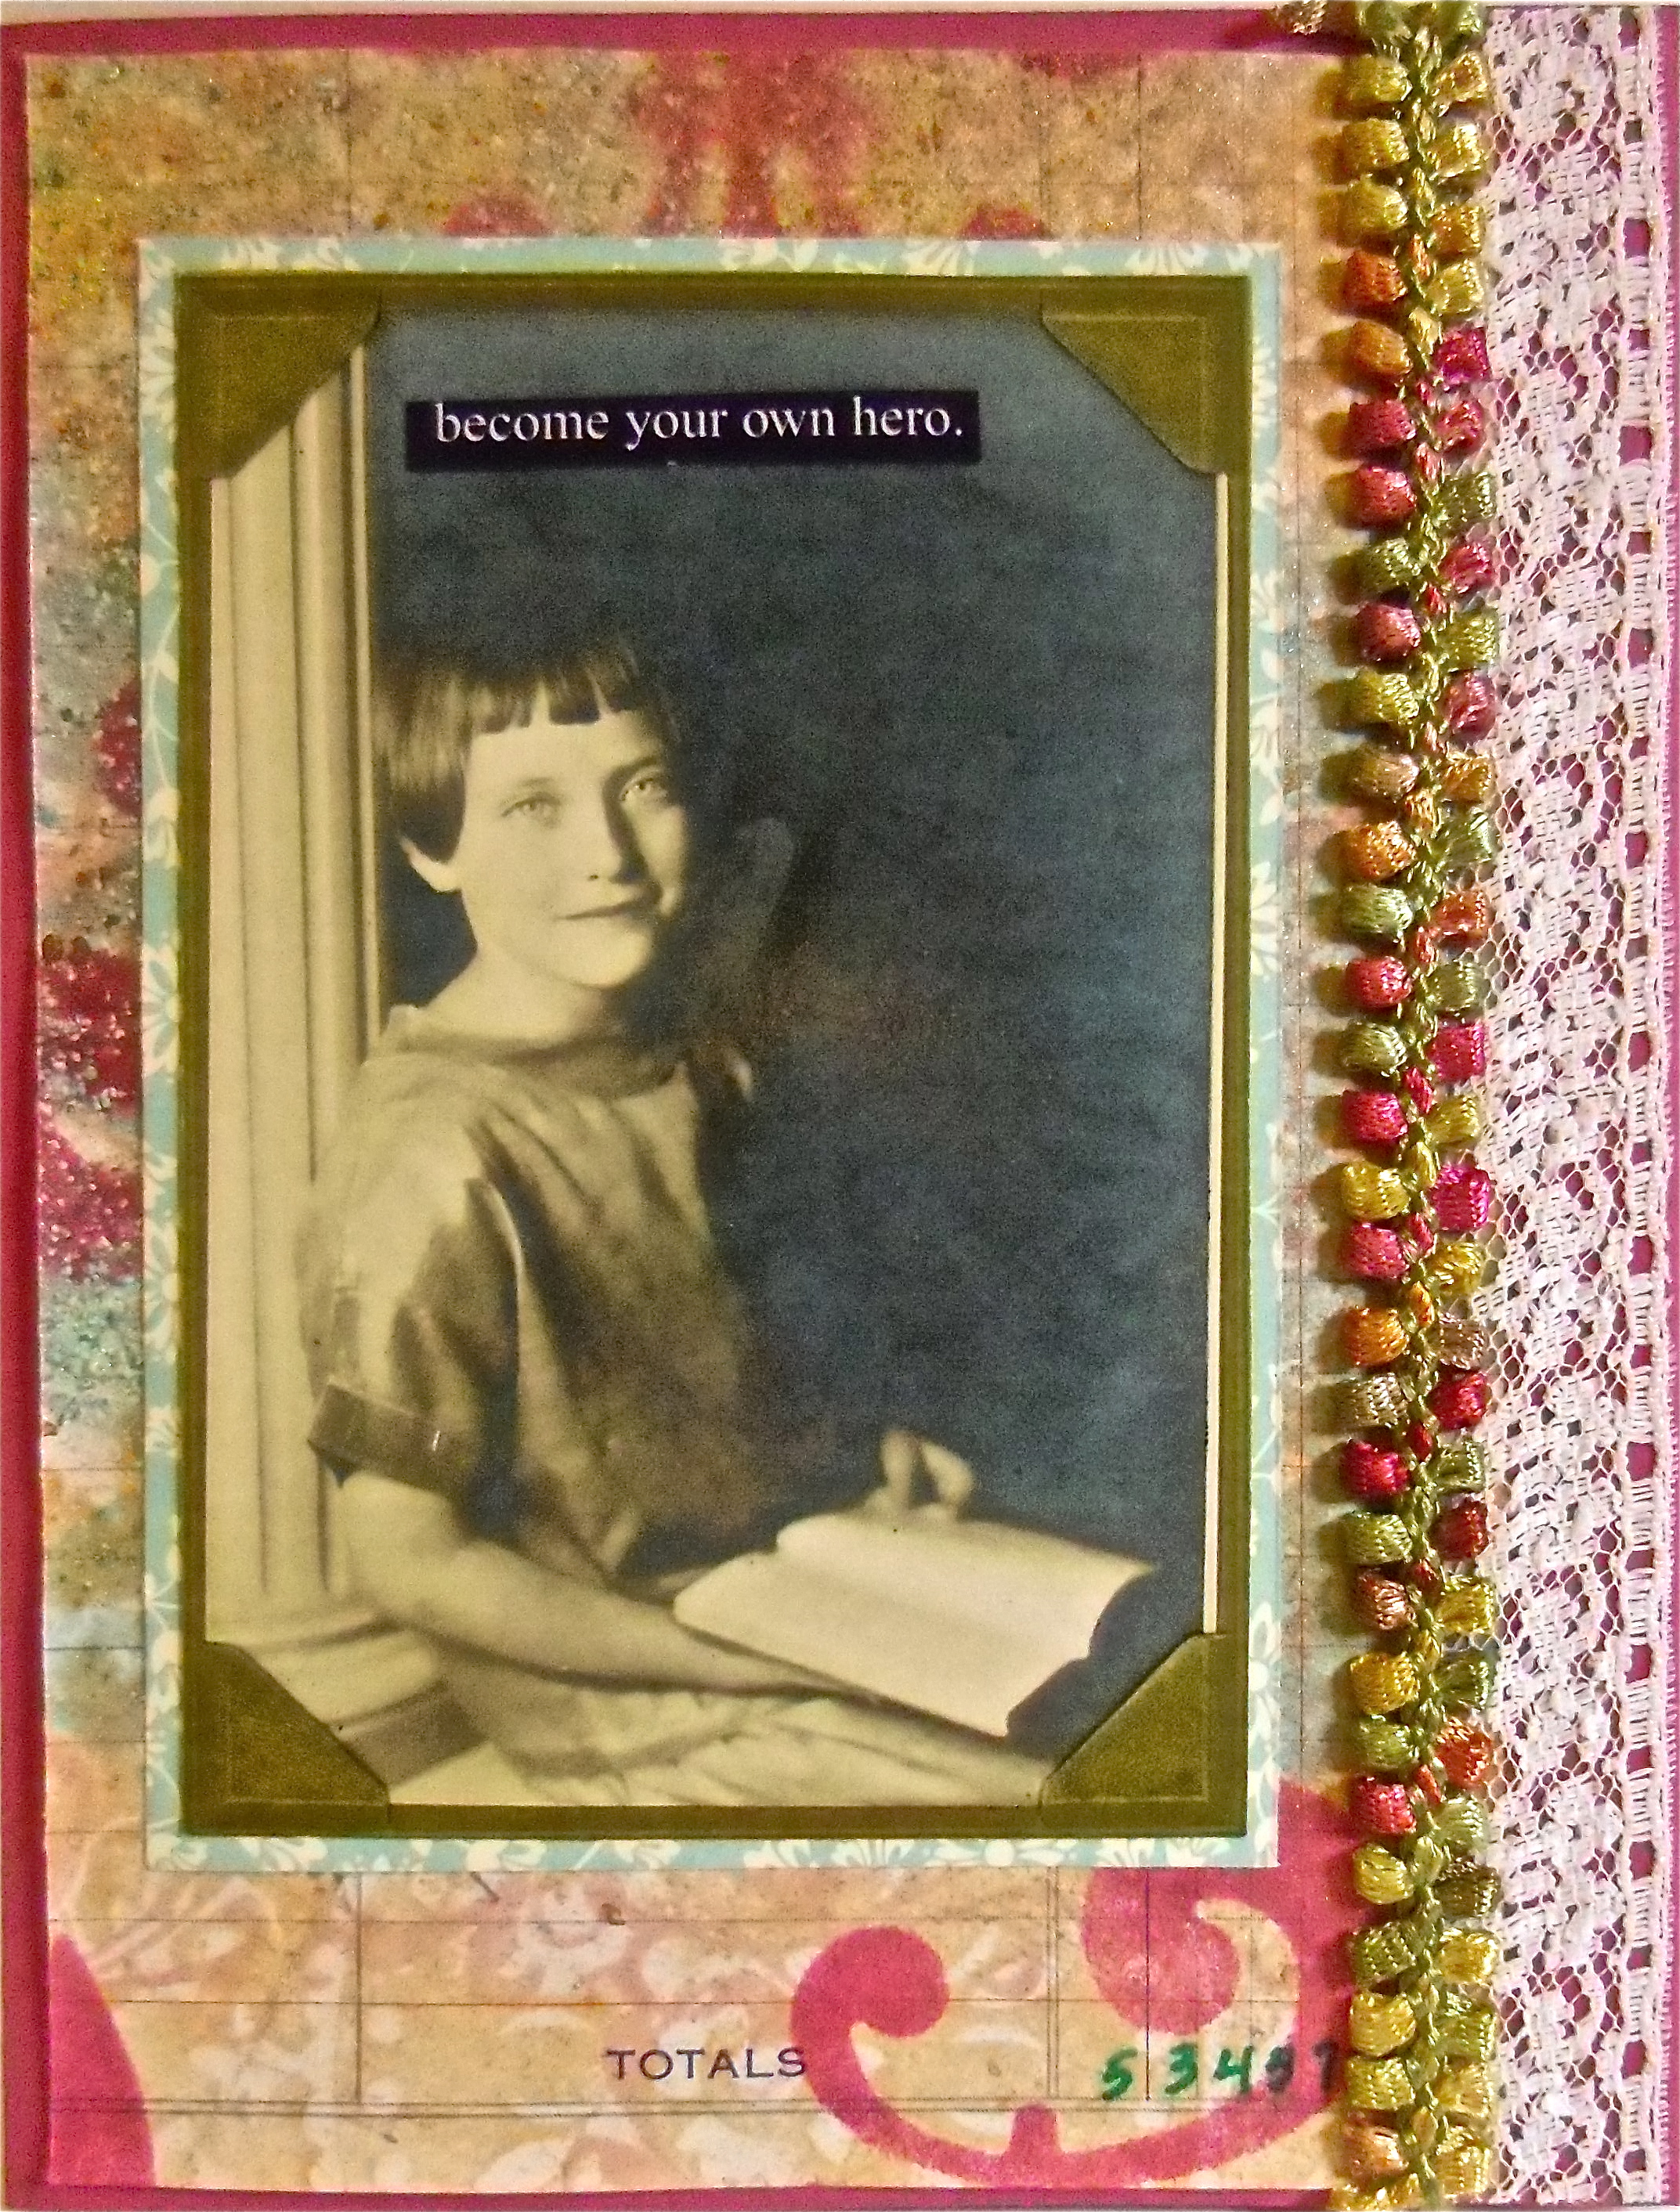 collage art, hand-made greeting card